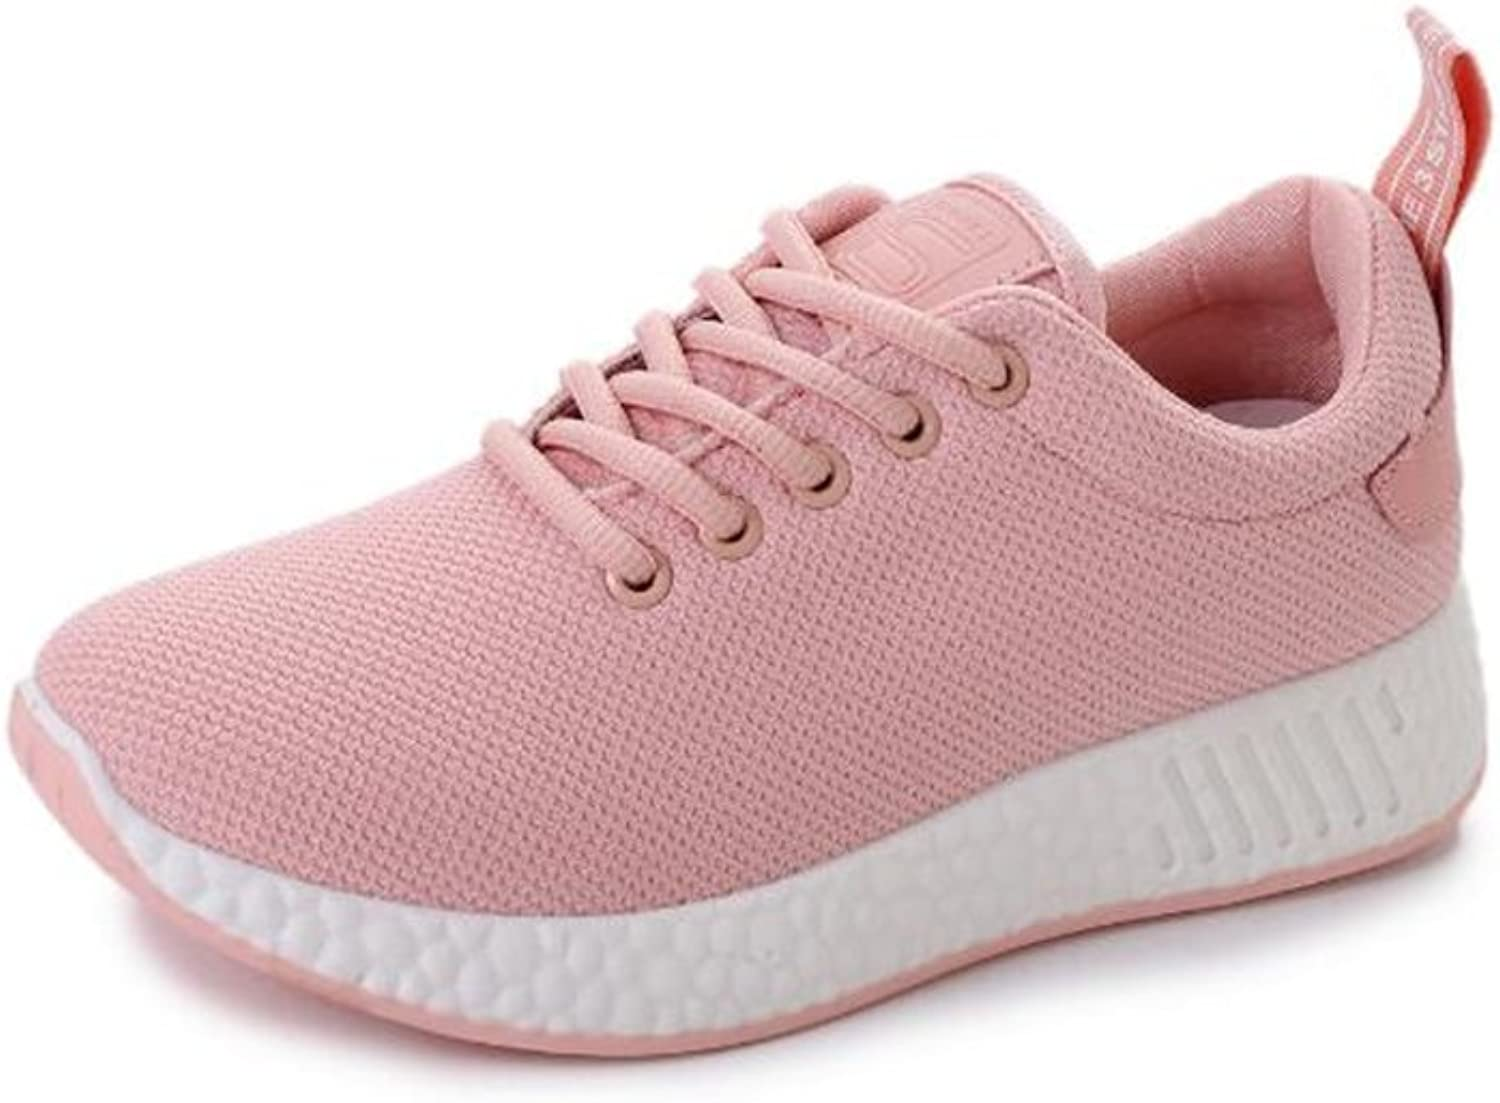 MINIKATA 2018 Spring and Summer New Women's shoes Ladies Casual shoes